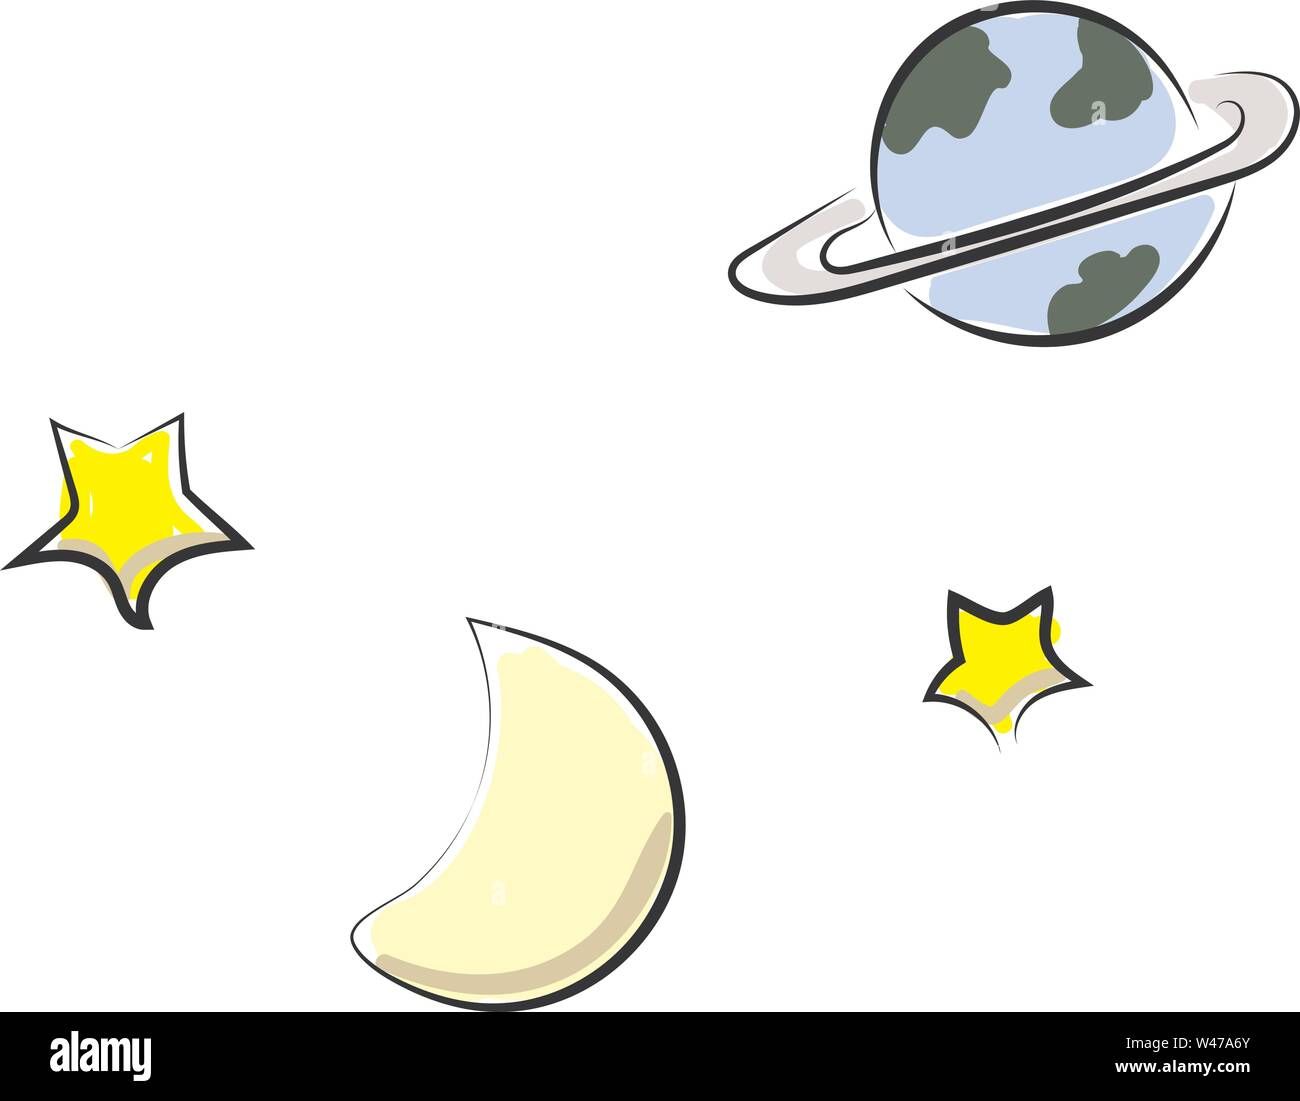 Space, illustration, vector on white background. - Stock Image